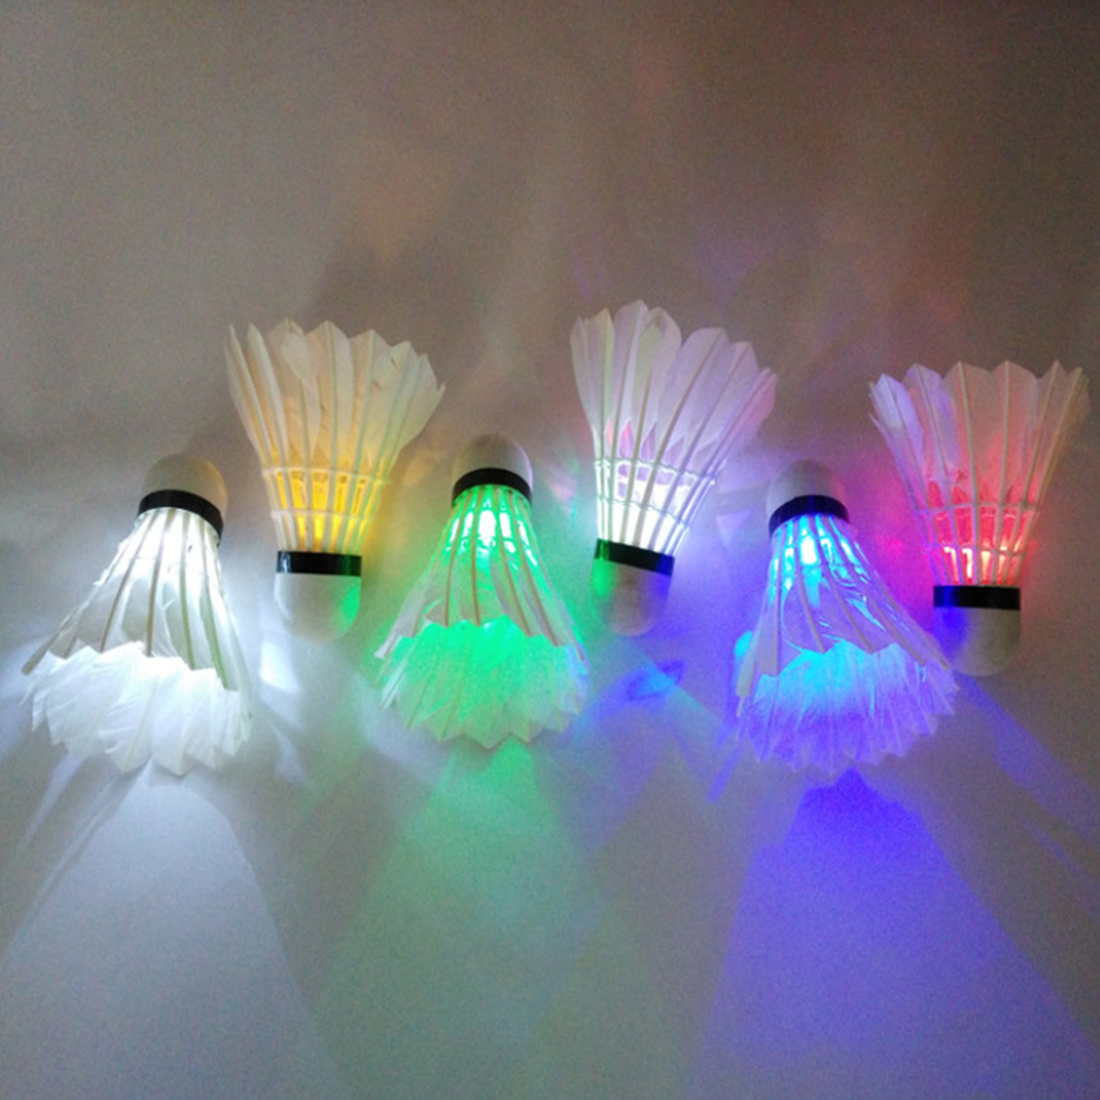 4 PCs Colorful LED Badminton Shuttlecock Ball Volants Badminton Plume Feather Glow In Night Outdoor Sport Accessories